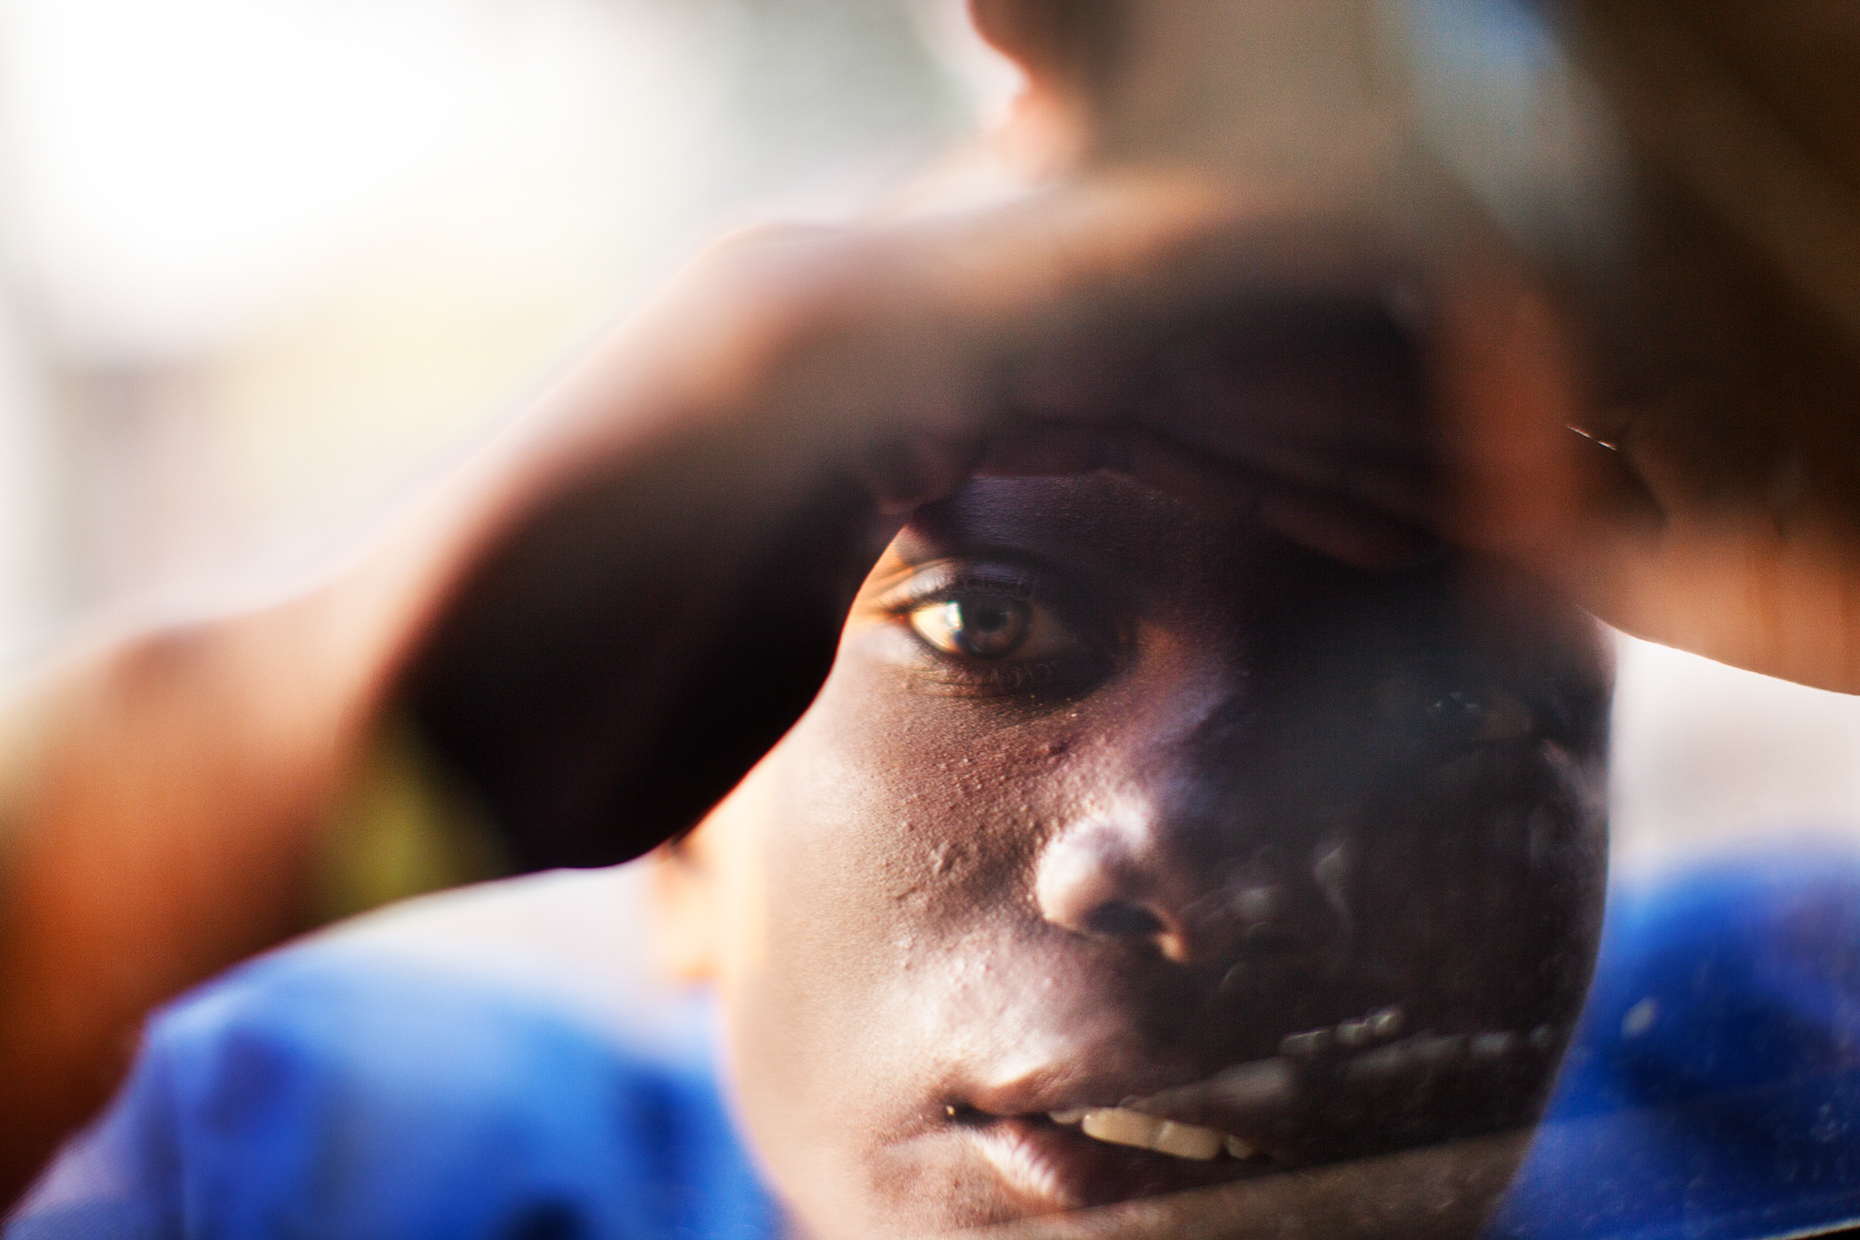 Haiti Tide Loads of Hope by Boston based commercial portrait photographer Brian Nevins